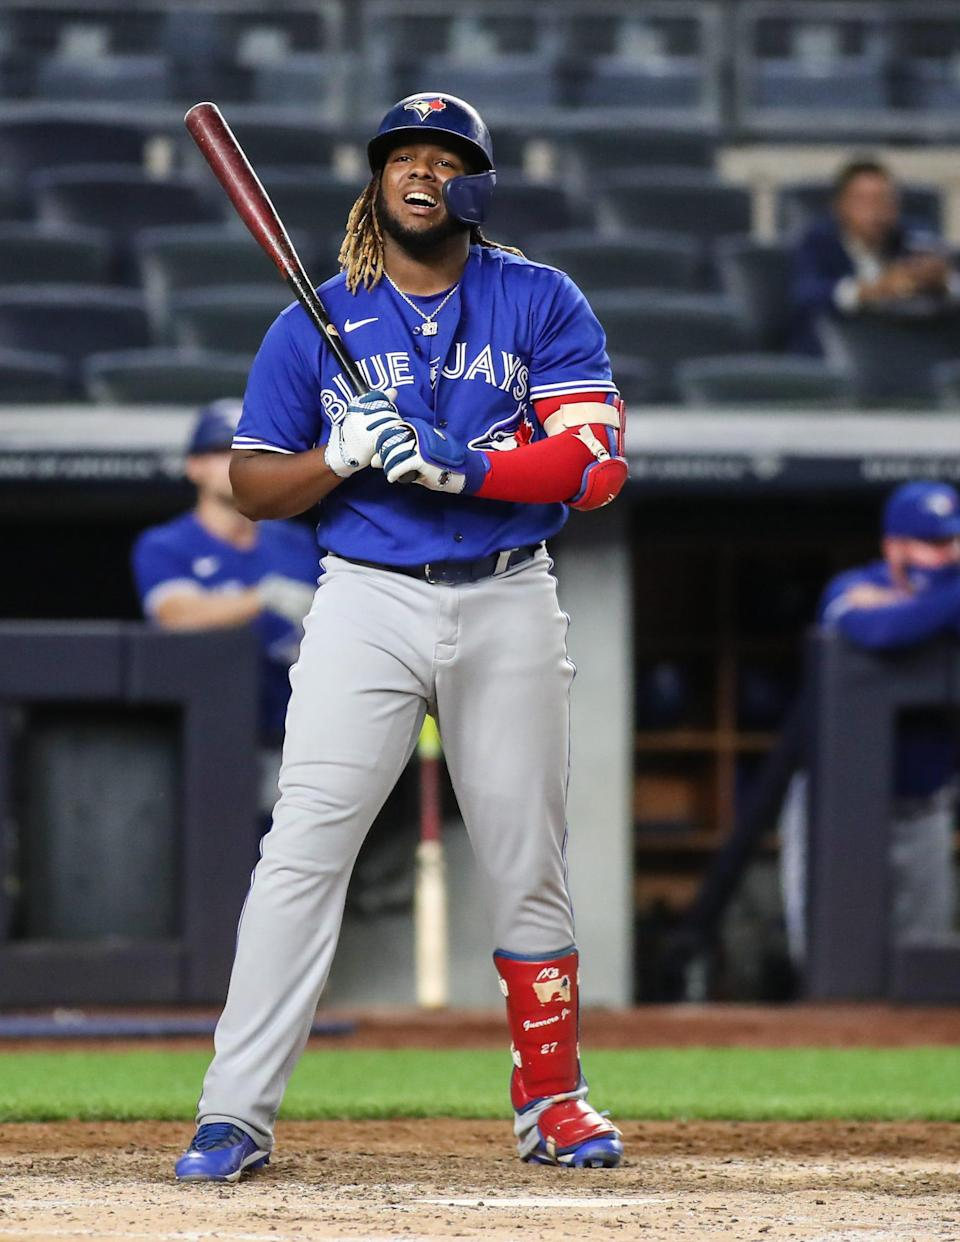 Toronto Blue Jays first baseman Vladimir Guerrero Jr. received the most votes in the initial tally.